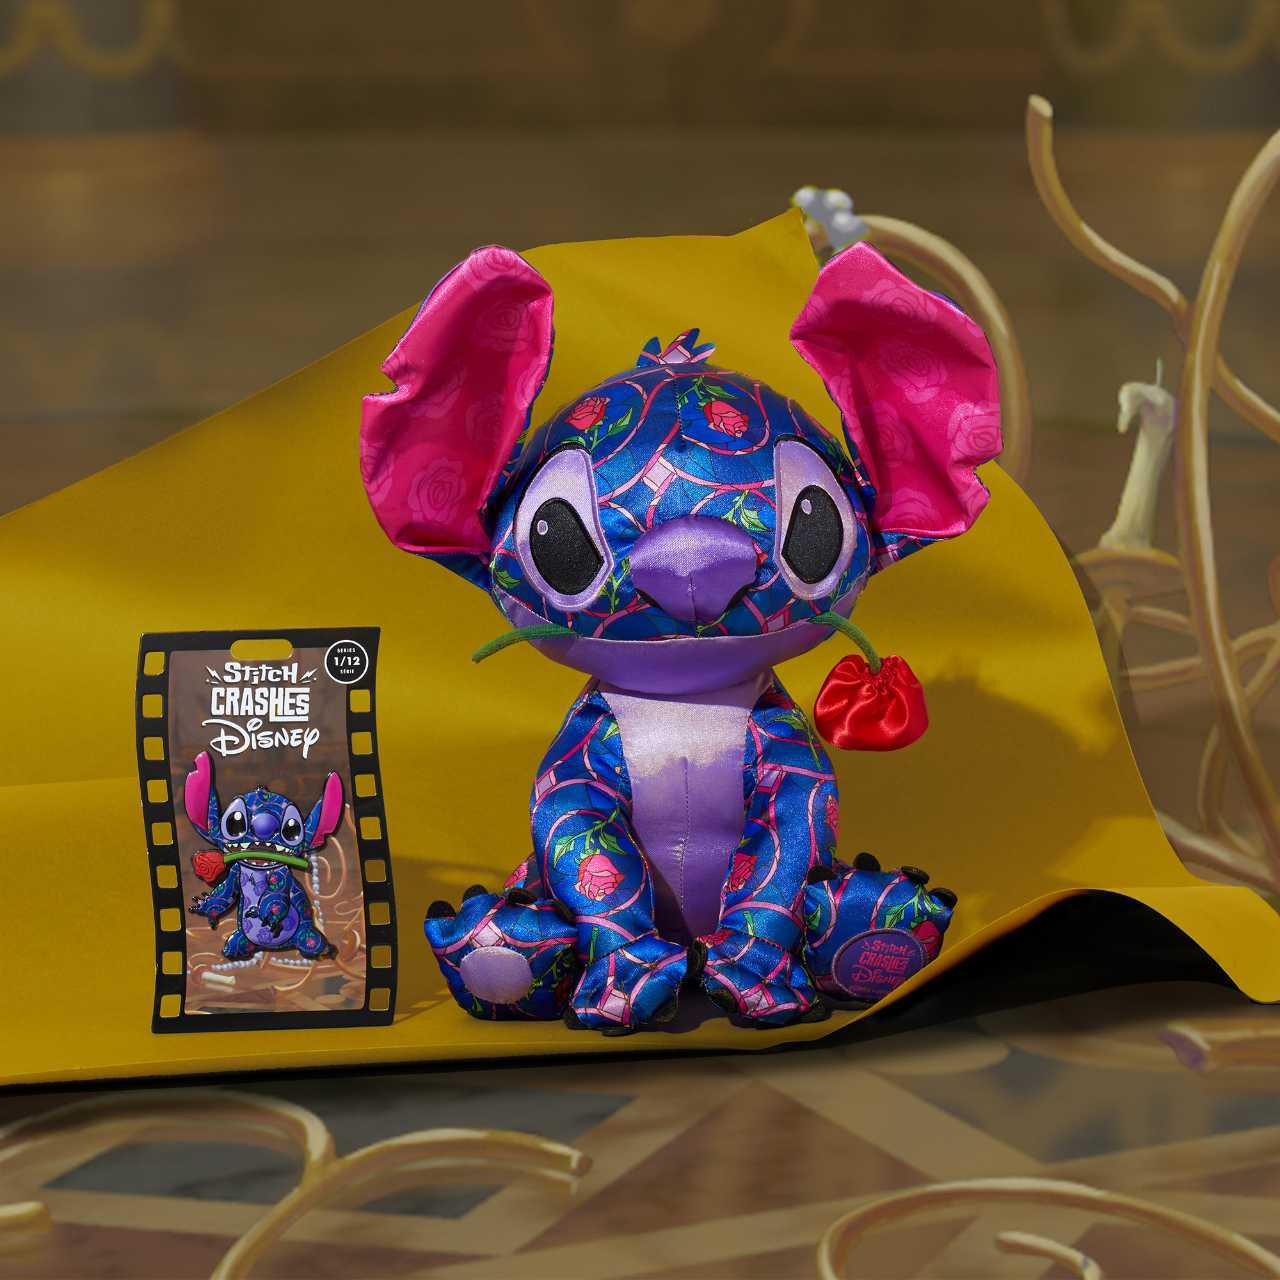 lilo and stitch crashes disney beauty and the beast